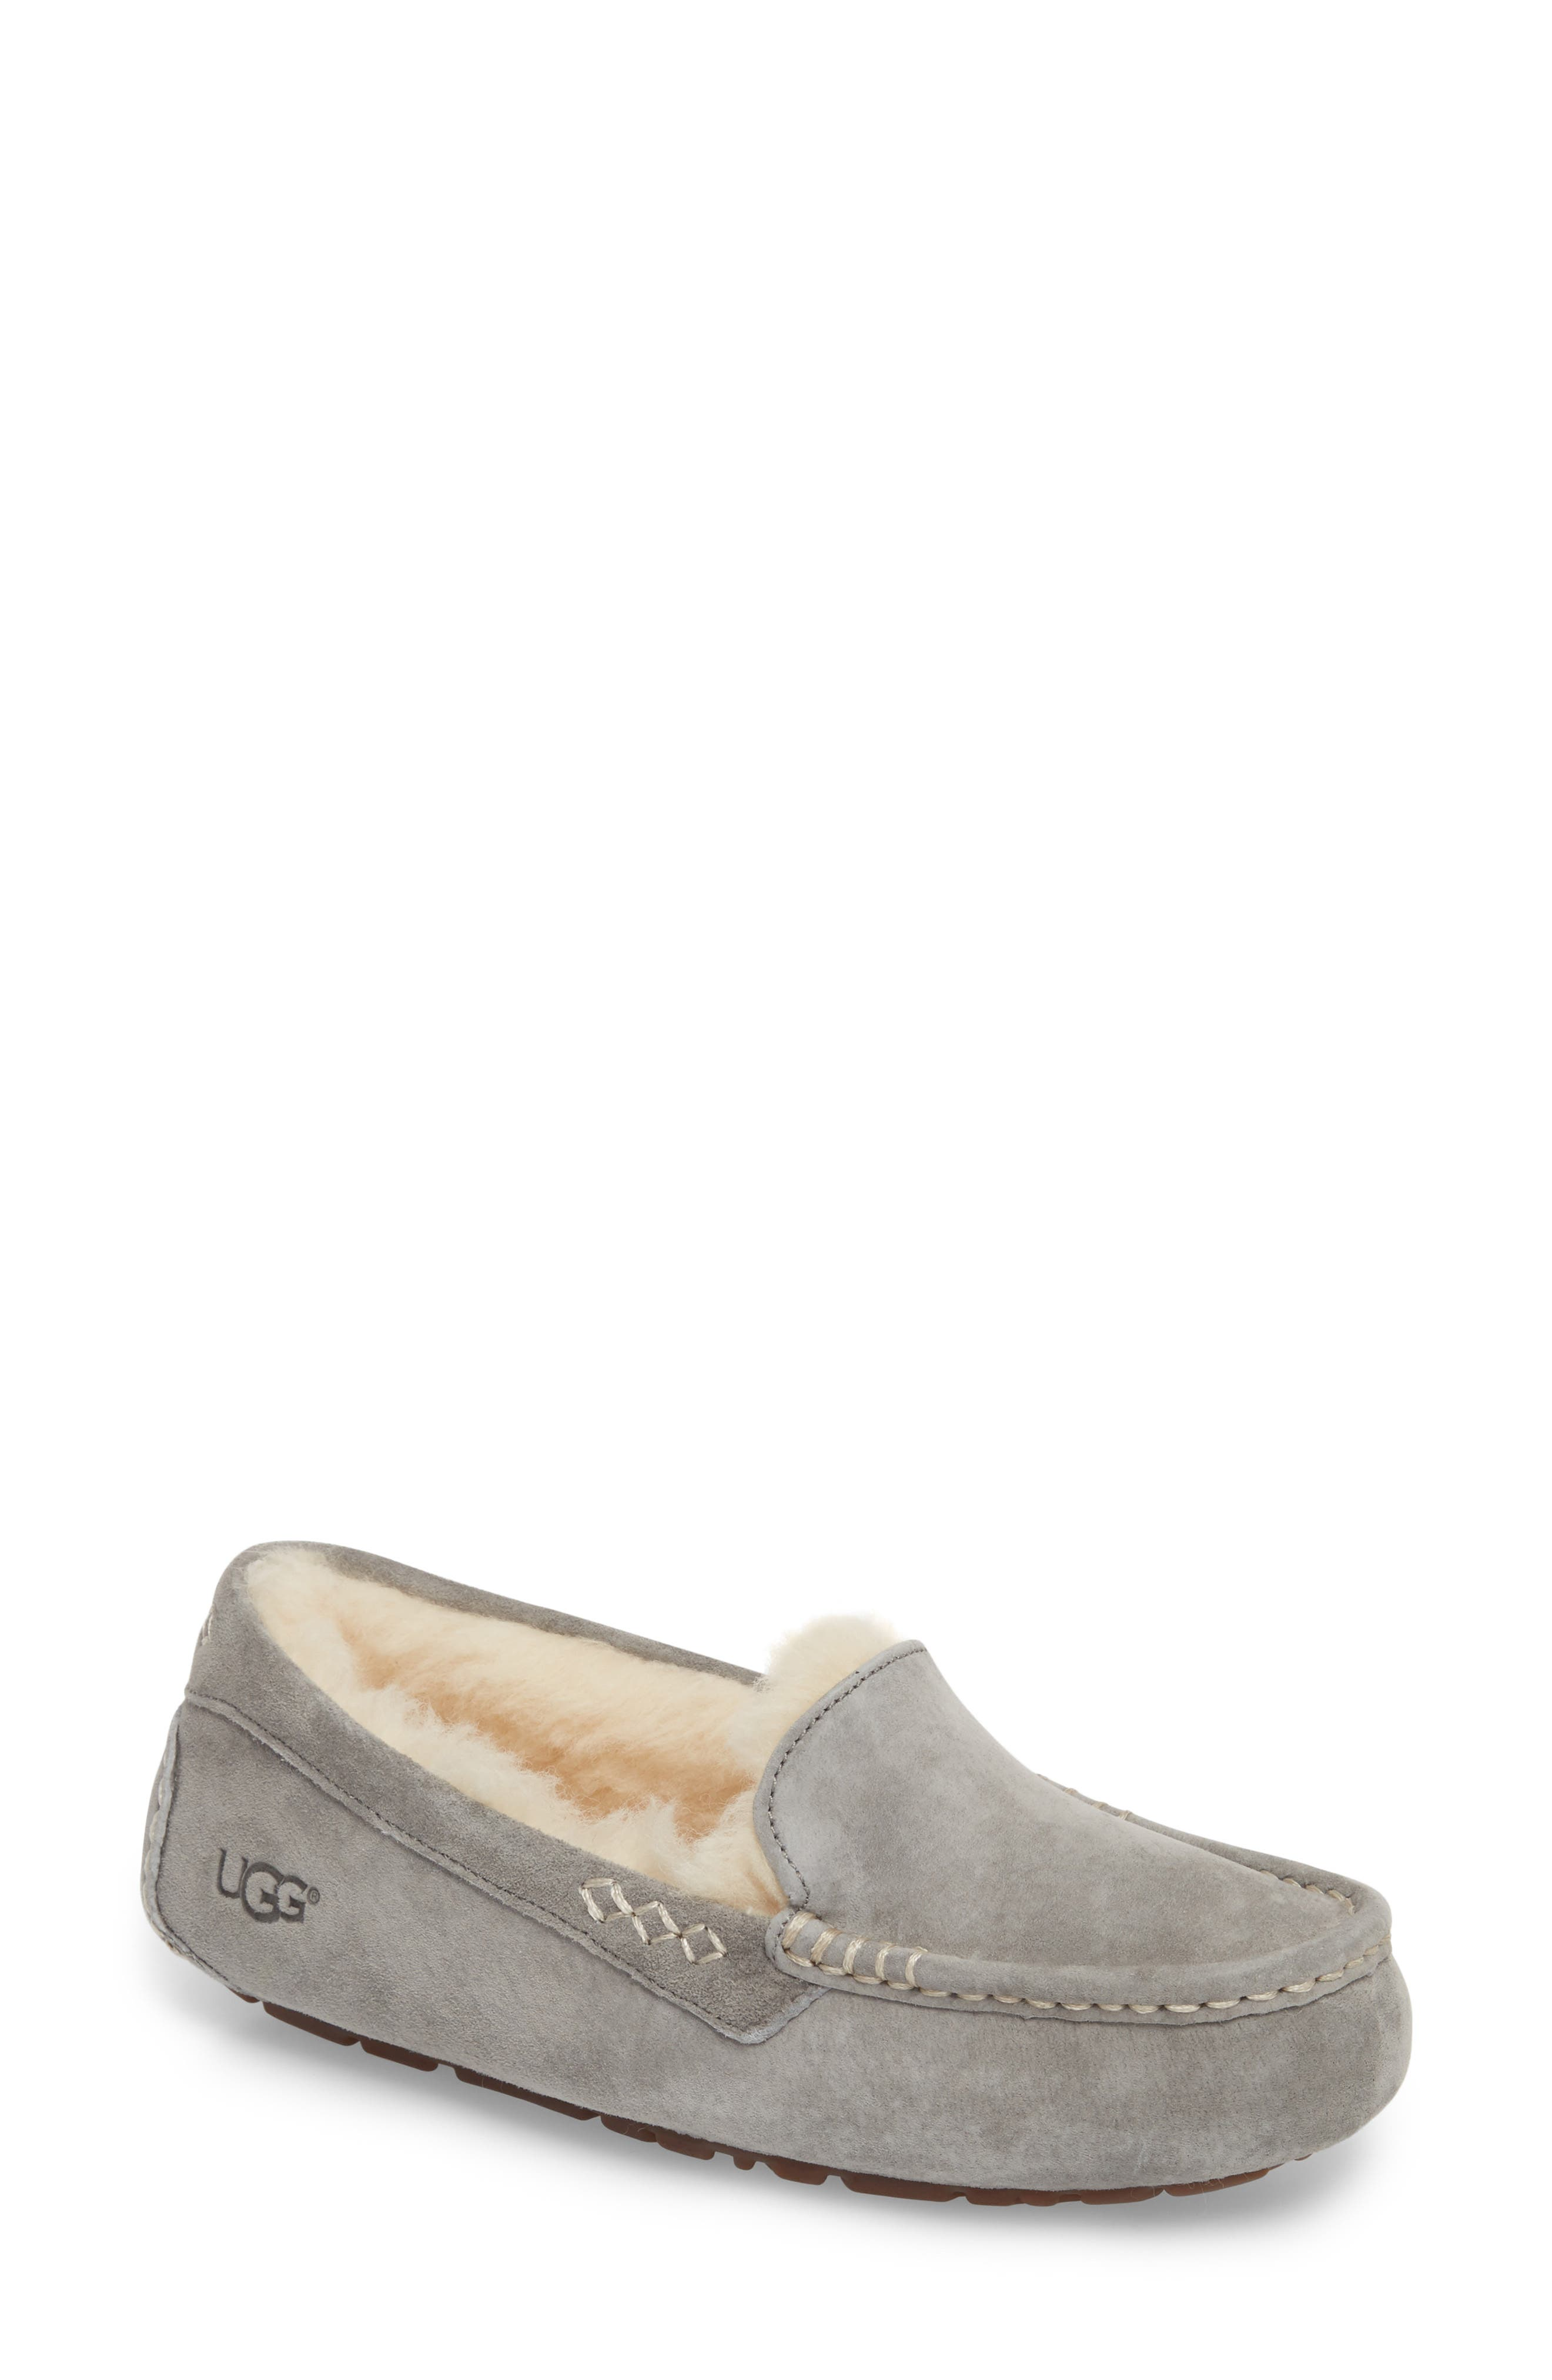 UGG<SUP>®</SUP> Ansley Water Resistant Slipper, Main, color, LIGHT GREY